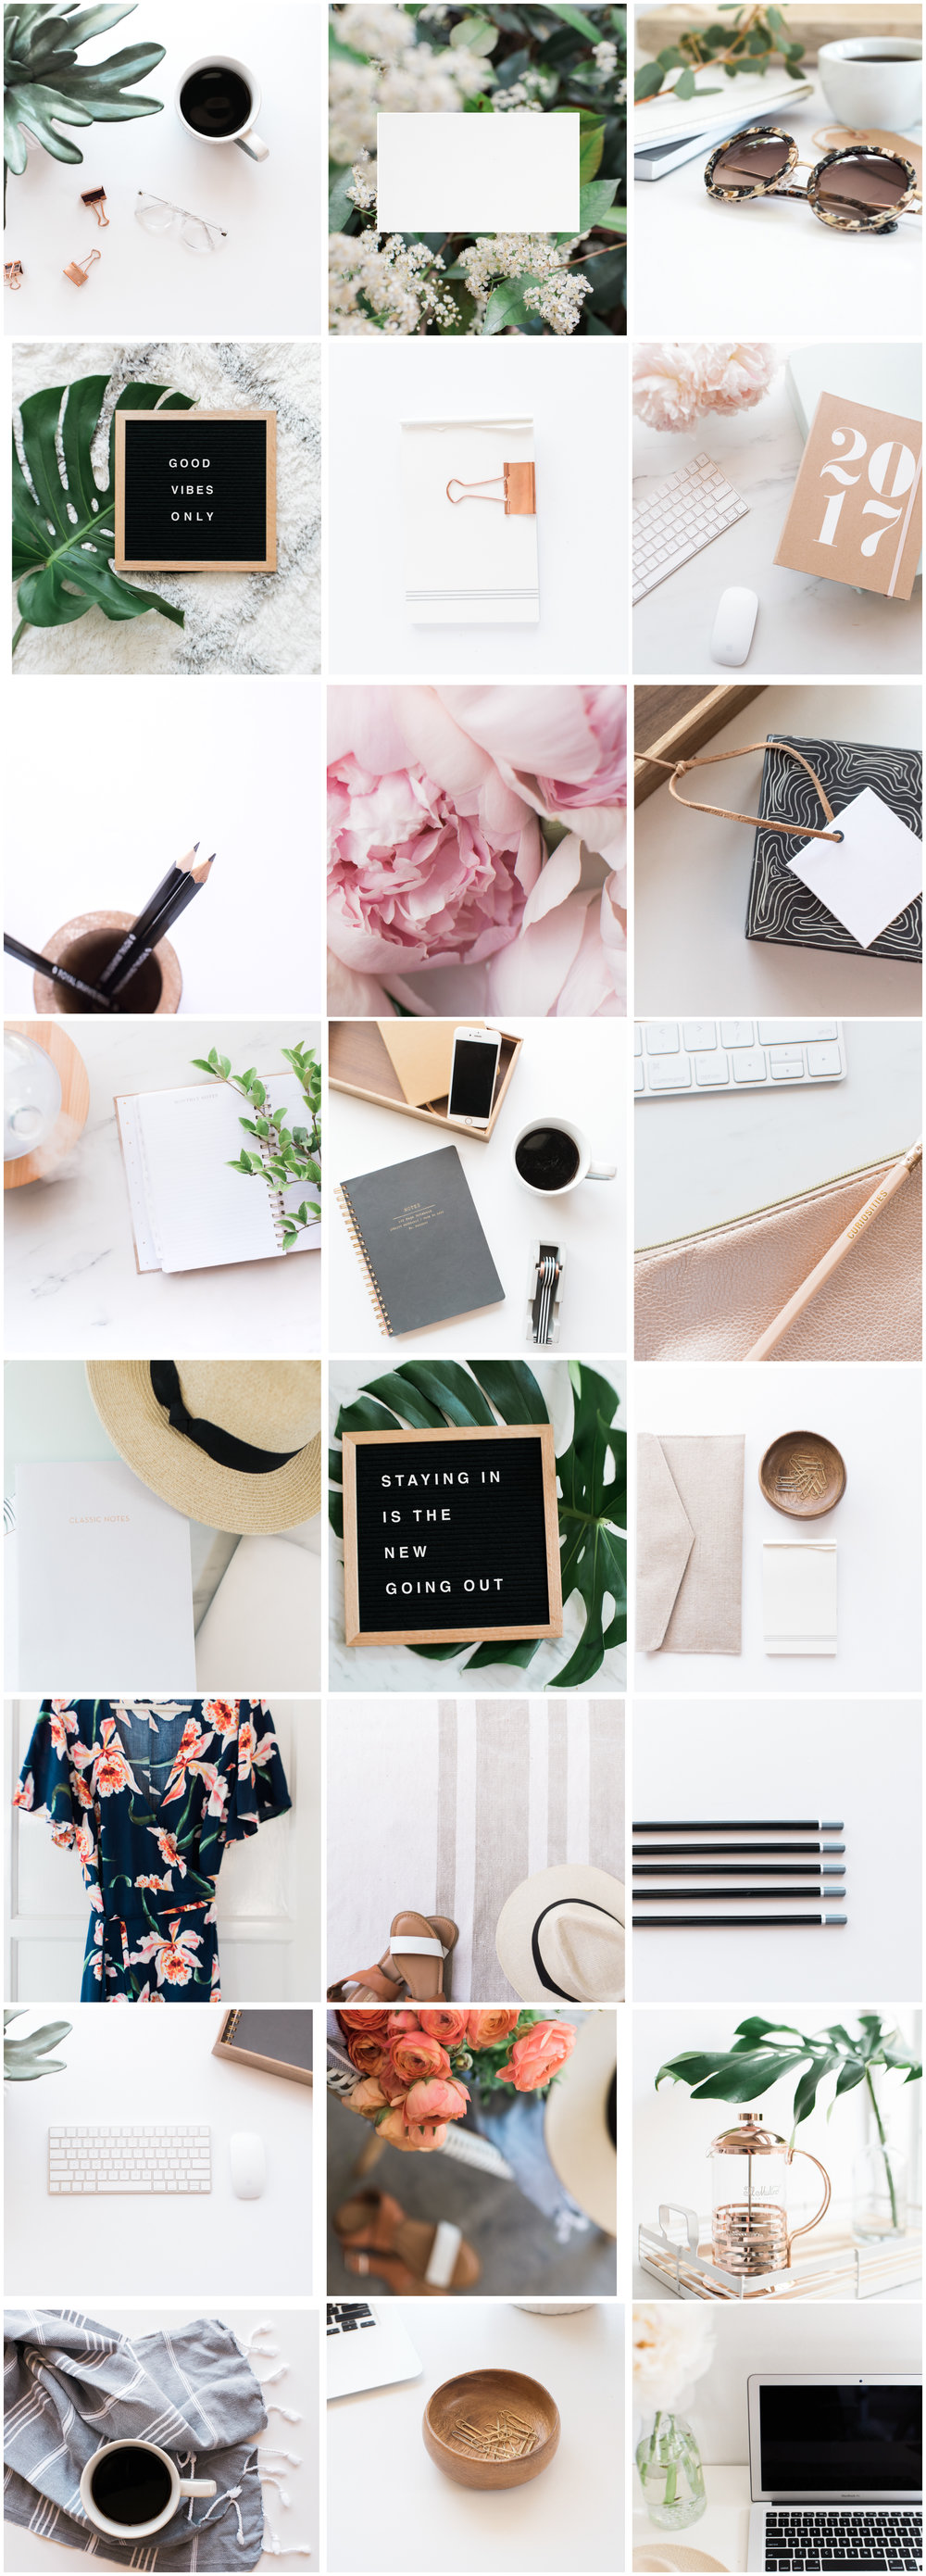 Ig template grid for sale with images 1.jpg